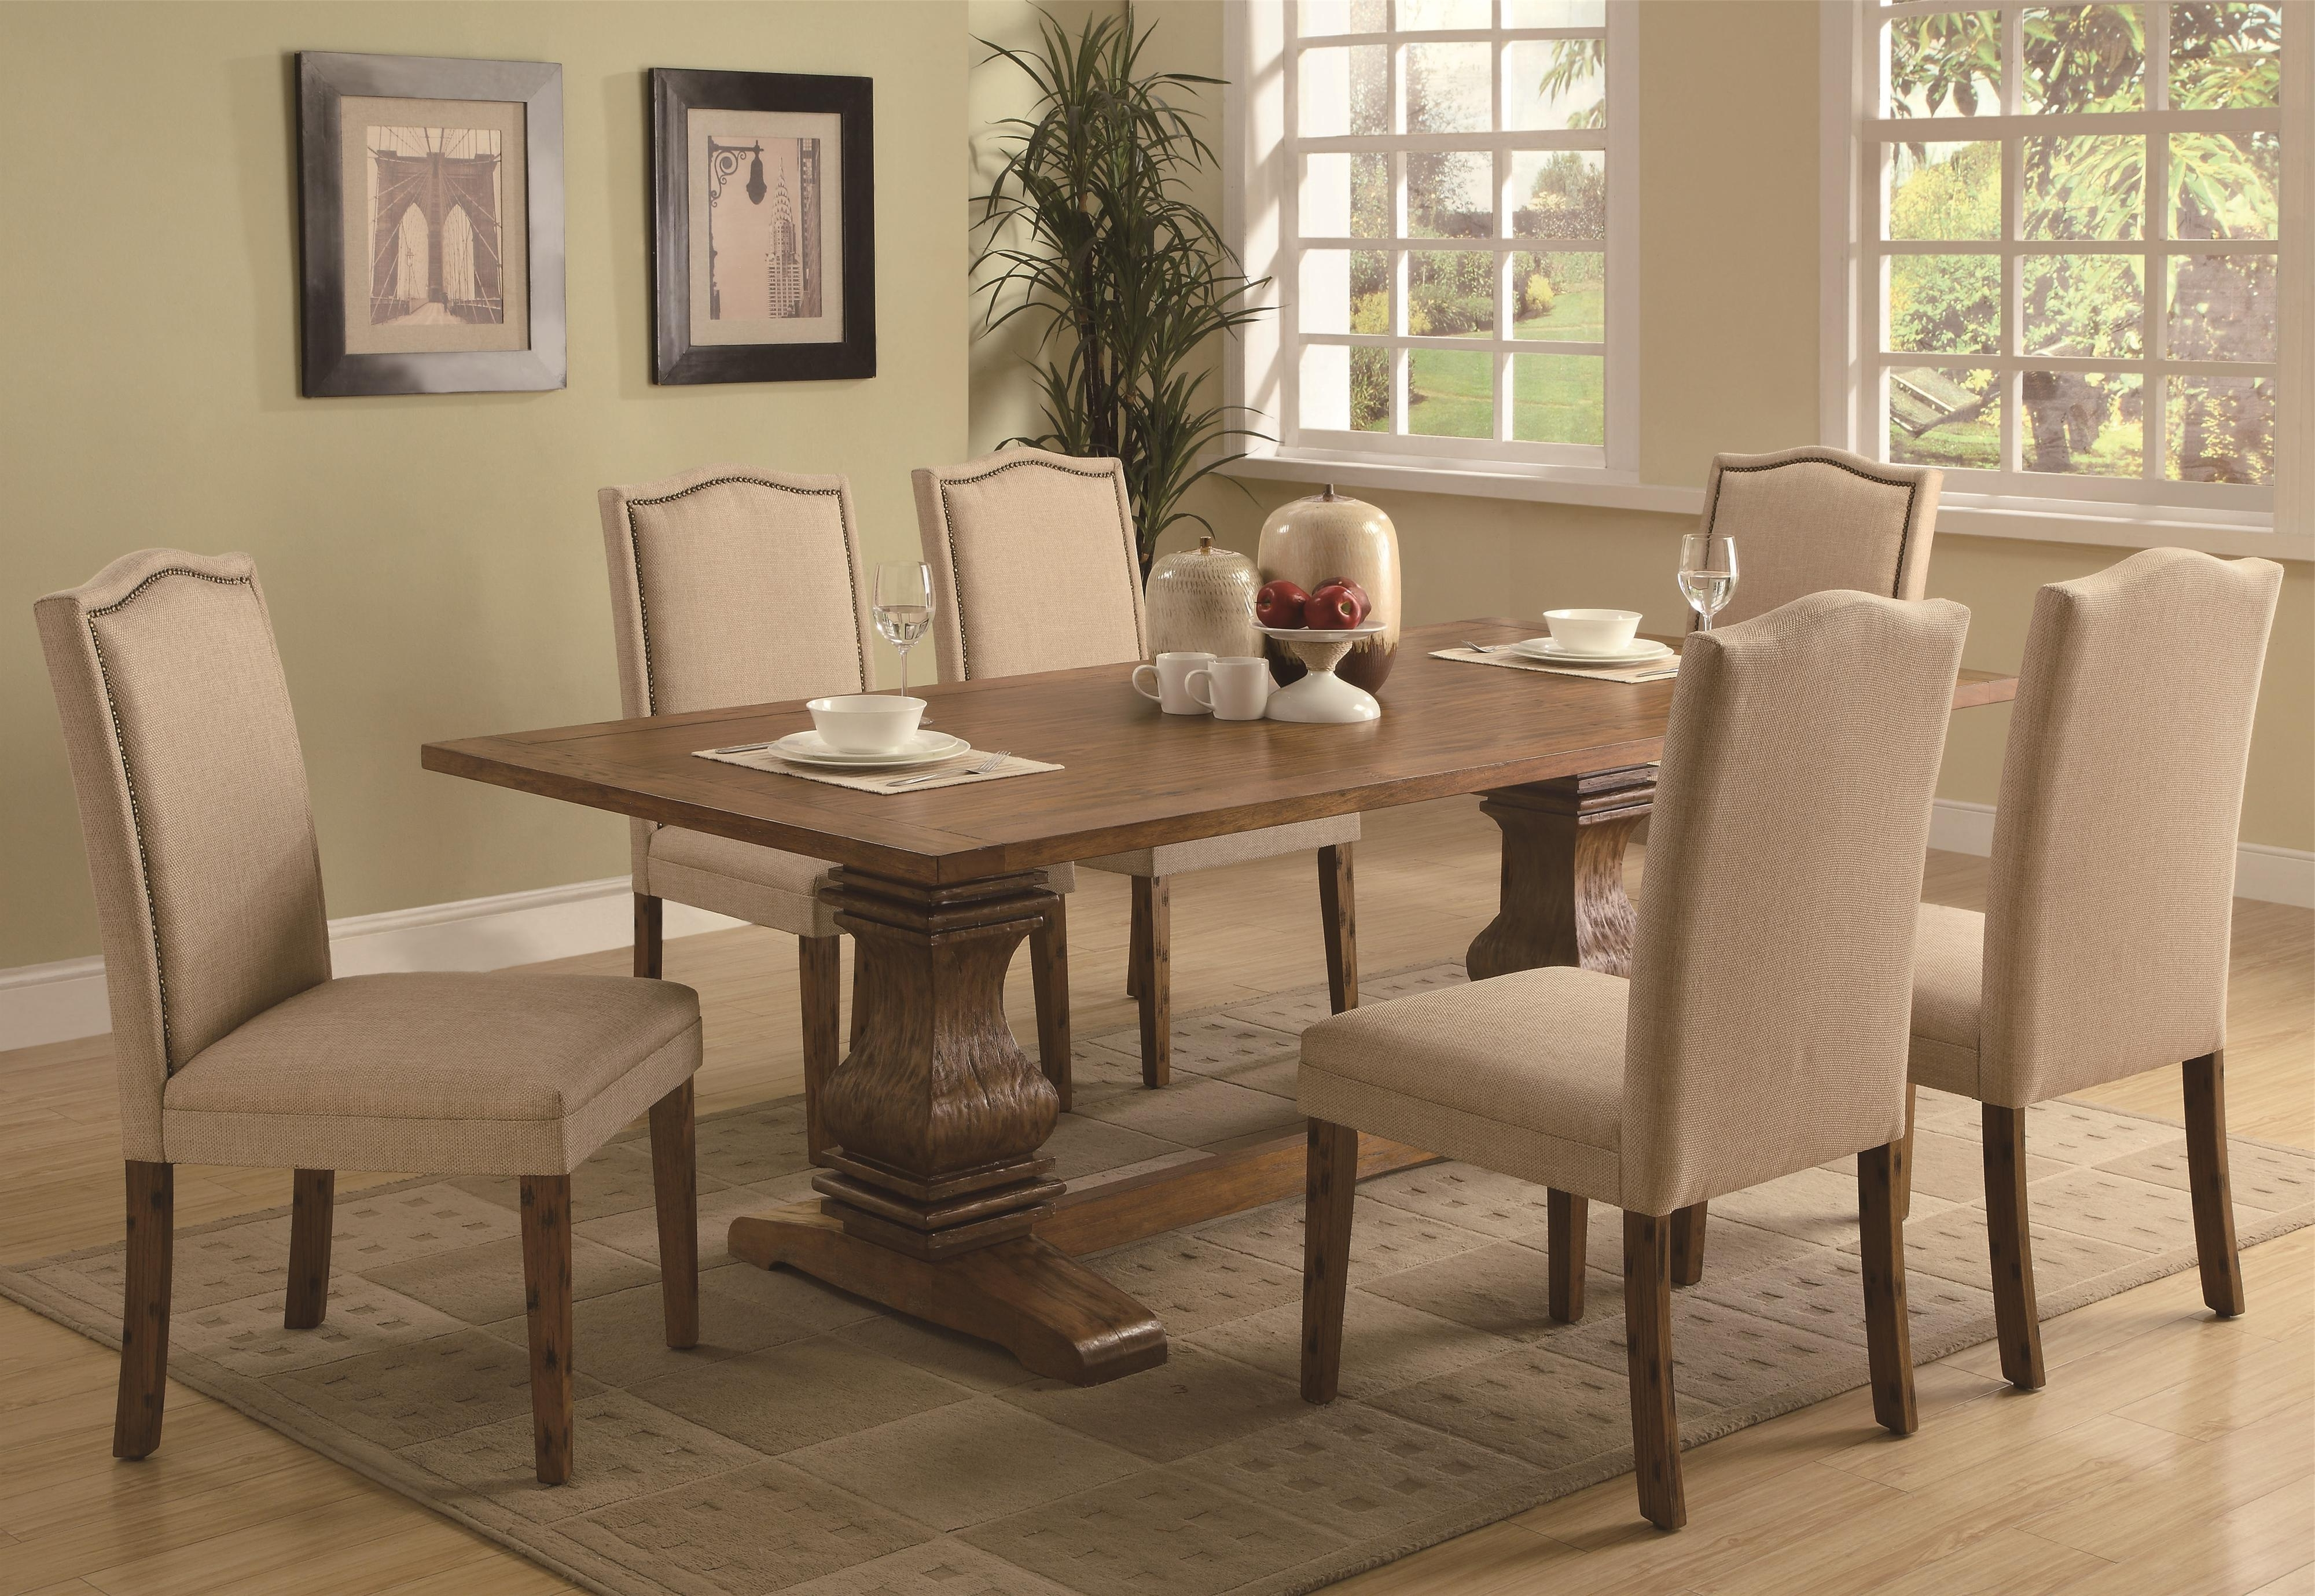 Dunk Throughout Newest Magnolia Home Double Pedestal Dining Tables (View 5 of 25)